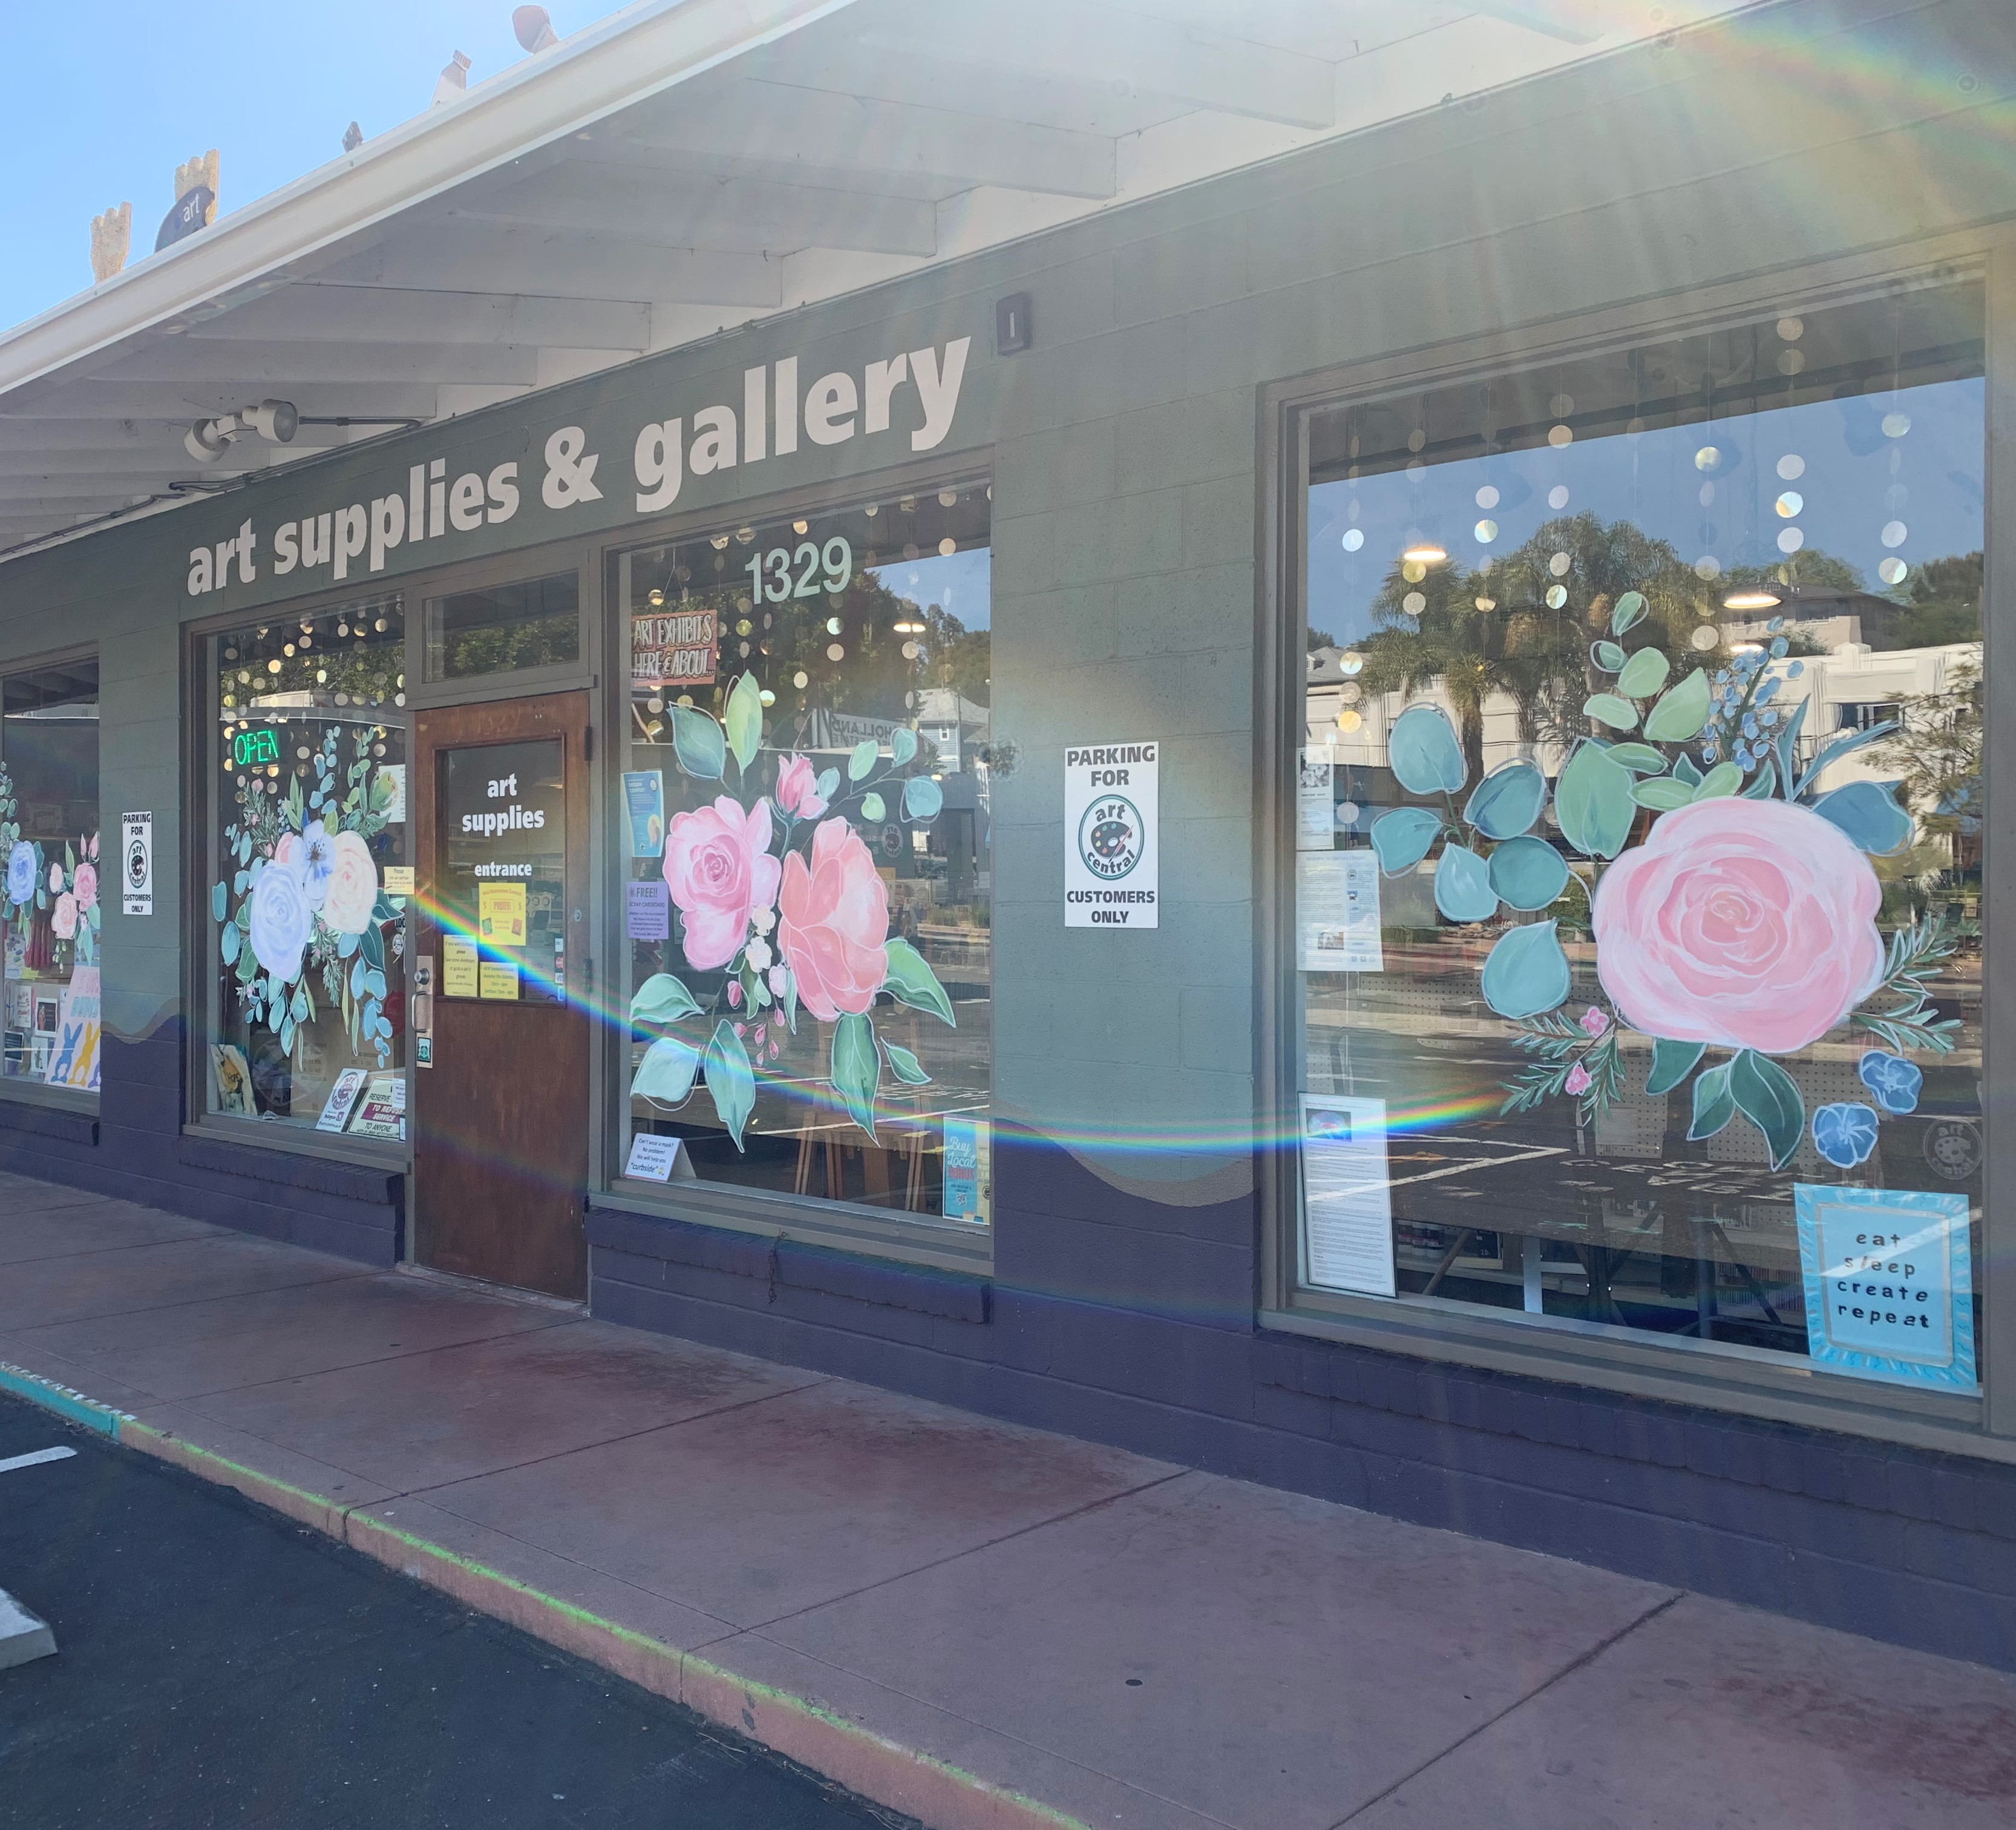 More AWESOME Virtual Gallery work plus May Flowers from Art Central and Downtown SLO!